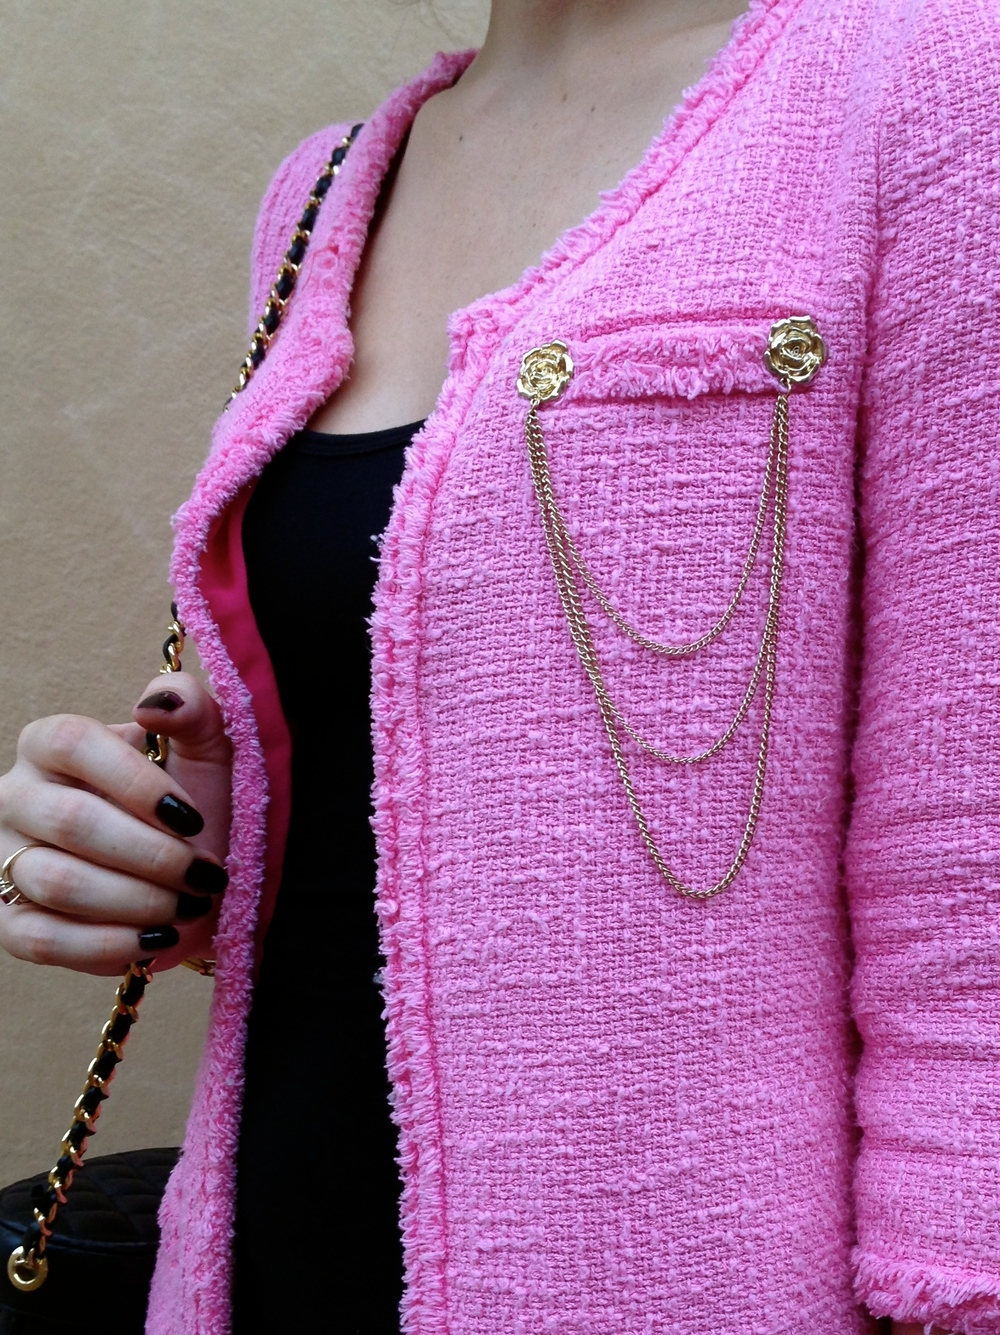 chronicles-of-a-little-pink-jacket.jpg